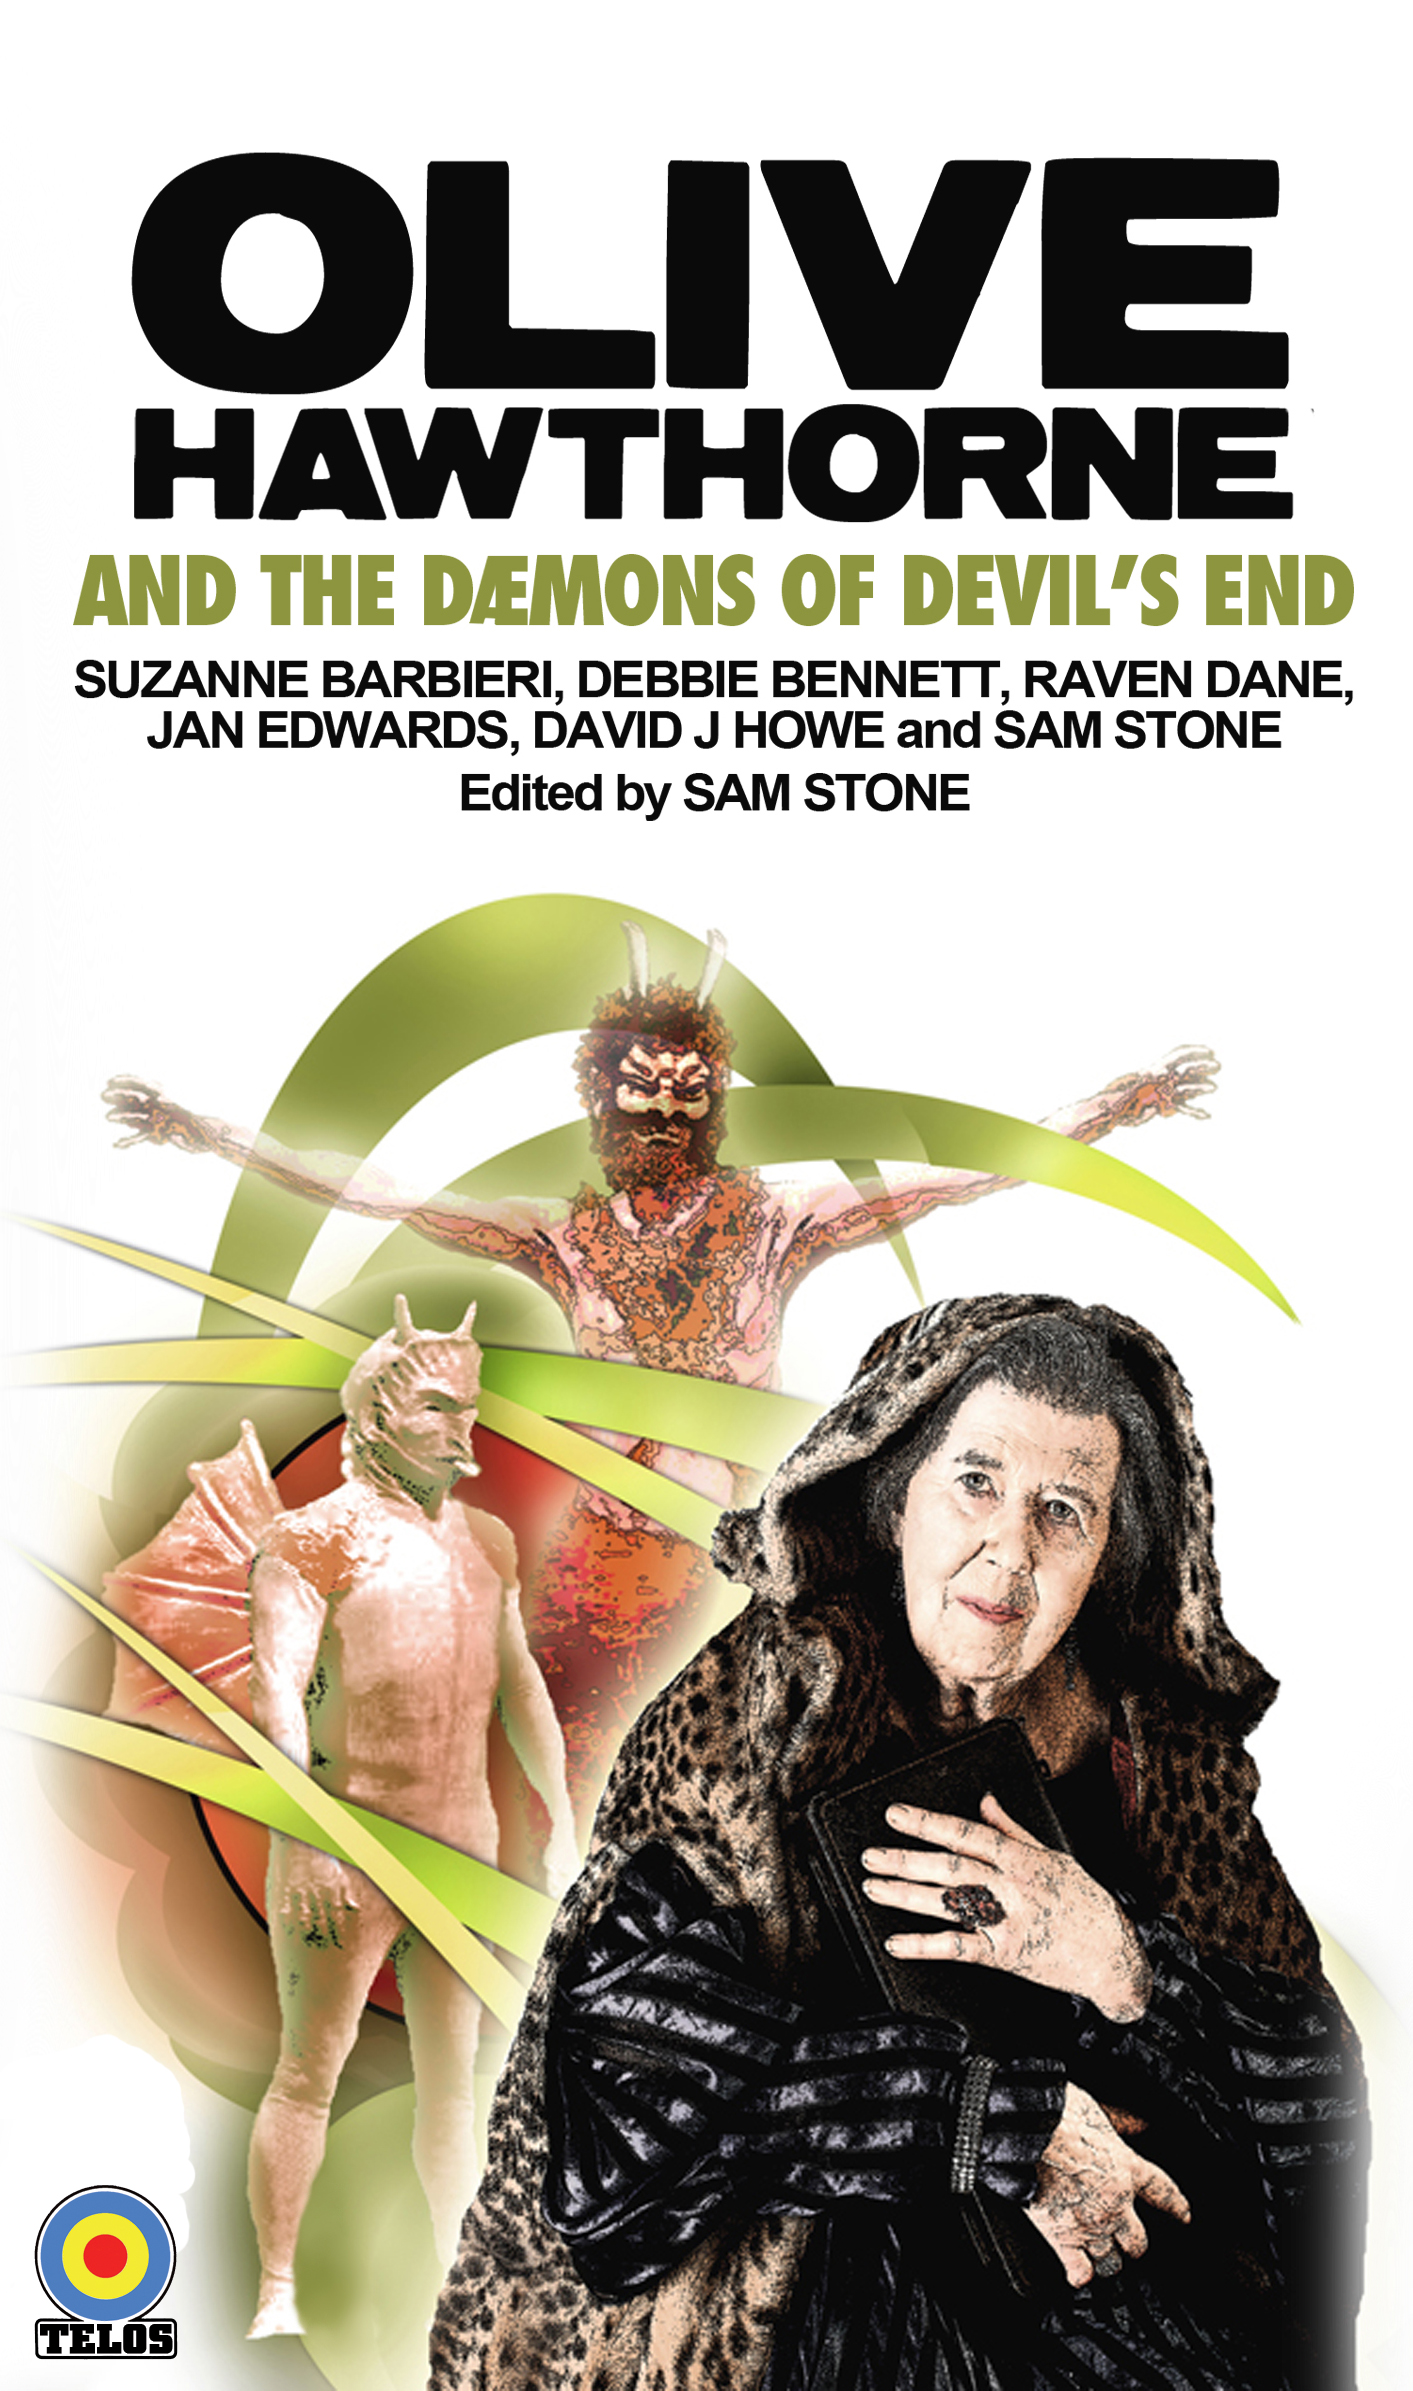 The Daemons of Devil's End (special cover) (Credit: Telos Publishing)